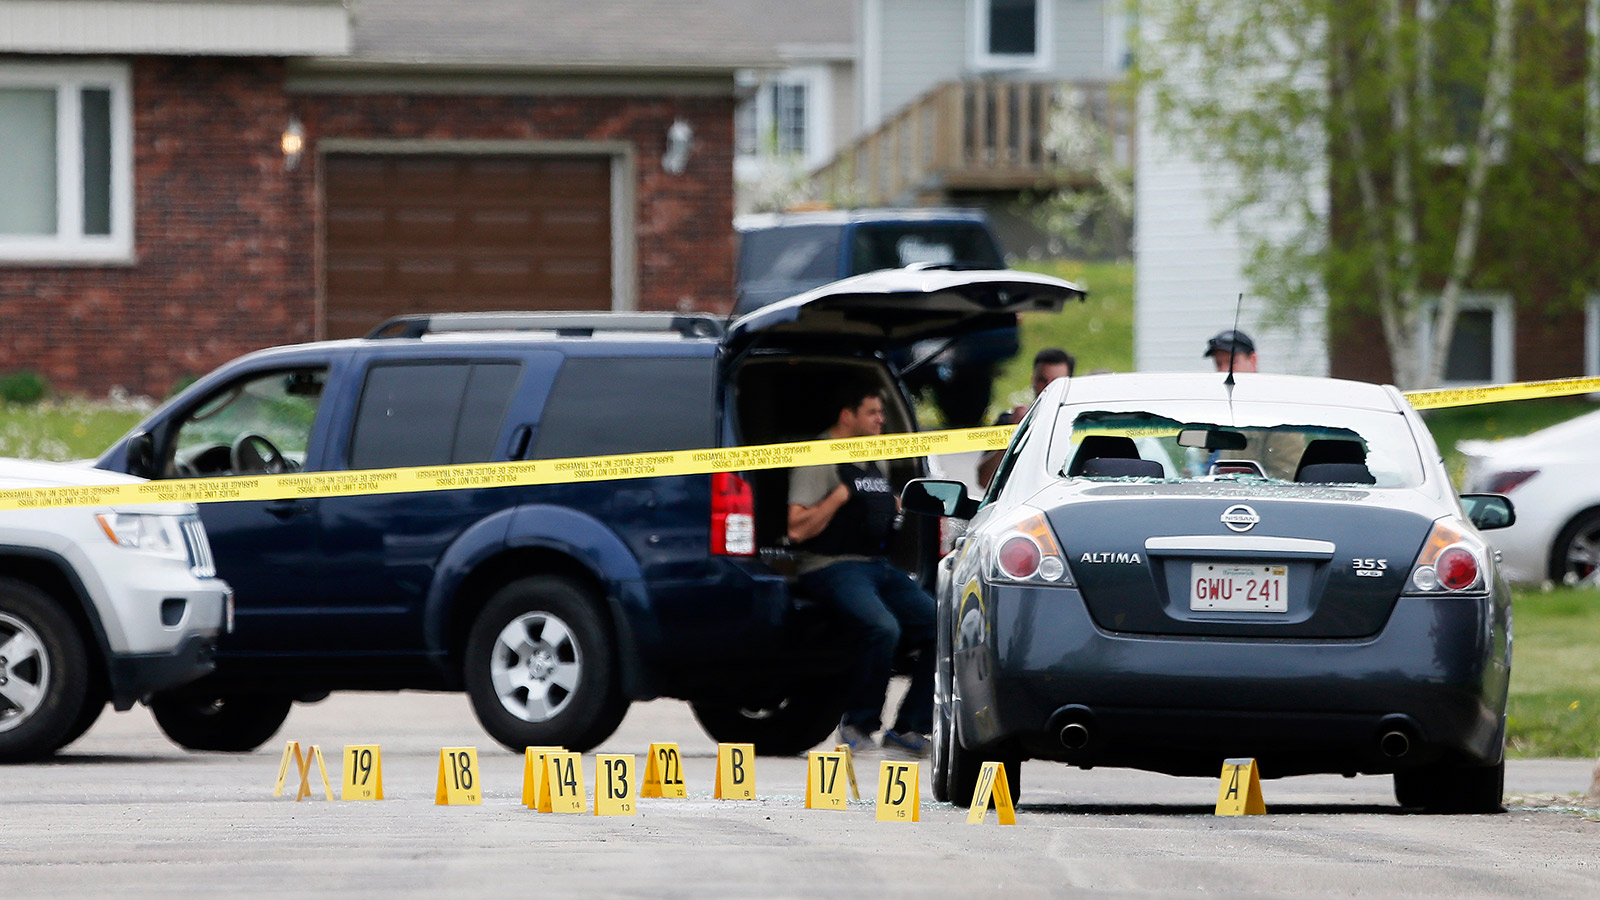 Evidence markers lie on a street at the scene of a shooting incident in the eastern city of Moncton, New Brunswick June 5, 2014. Canadian police mounted the massive hunt on Thursday for a 24-year-old man, Justin Bourque, armed with high-powered weapons who they suspect shot dead three police officers and wounded two more in Moncton. Christinne Muschi/Reuters